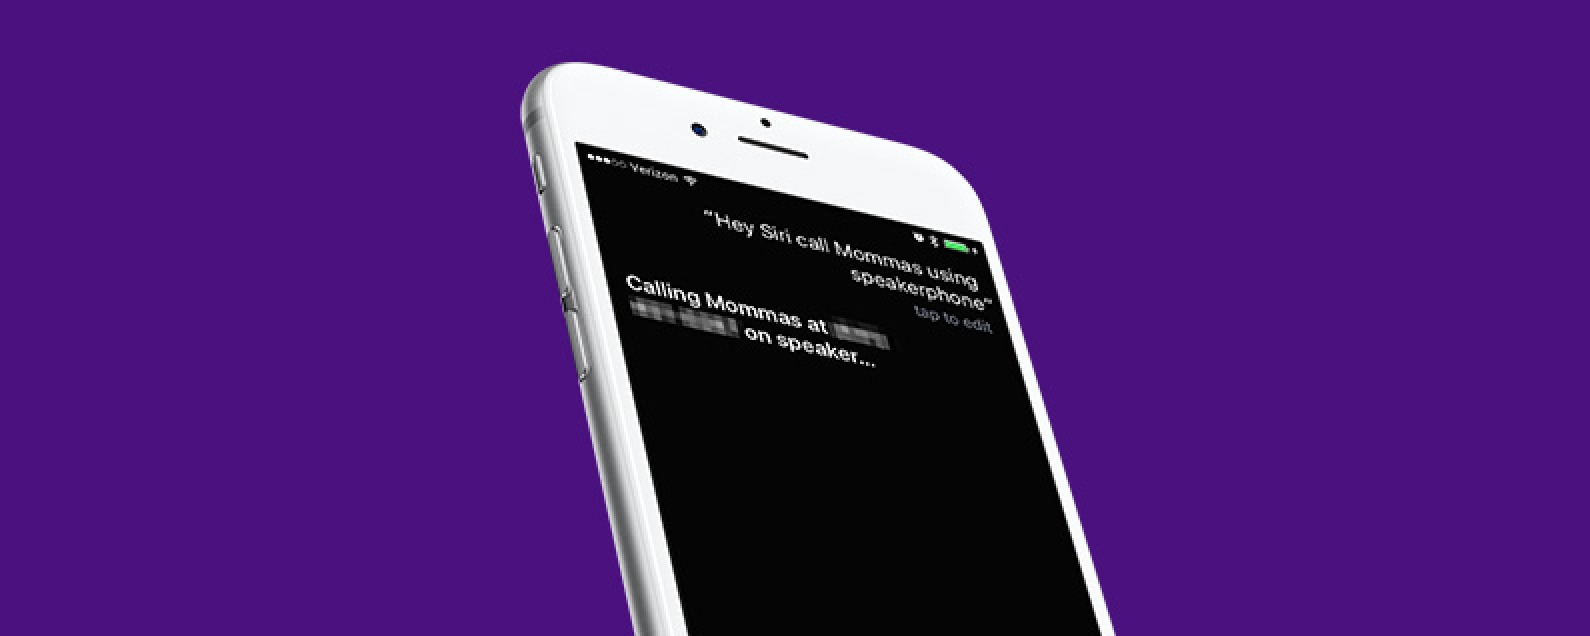 How To Make Speakerphone Calls Using Siri